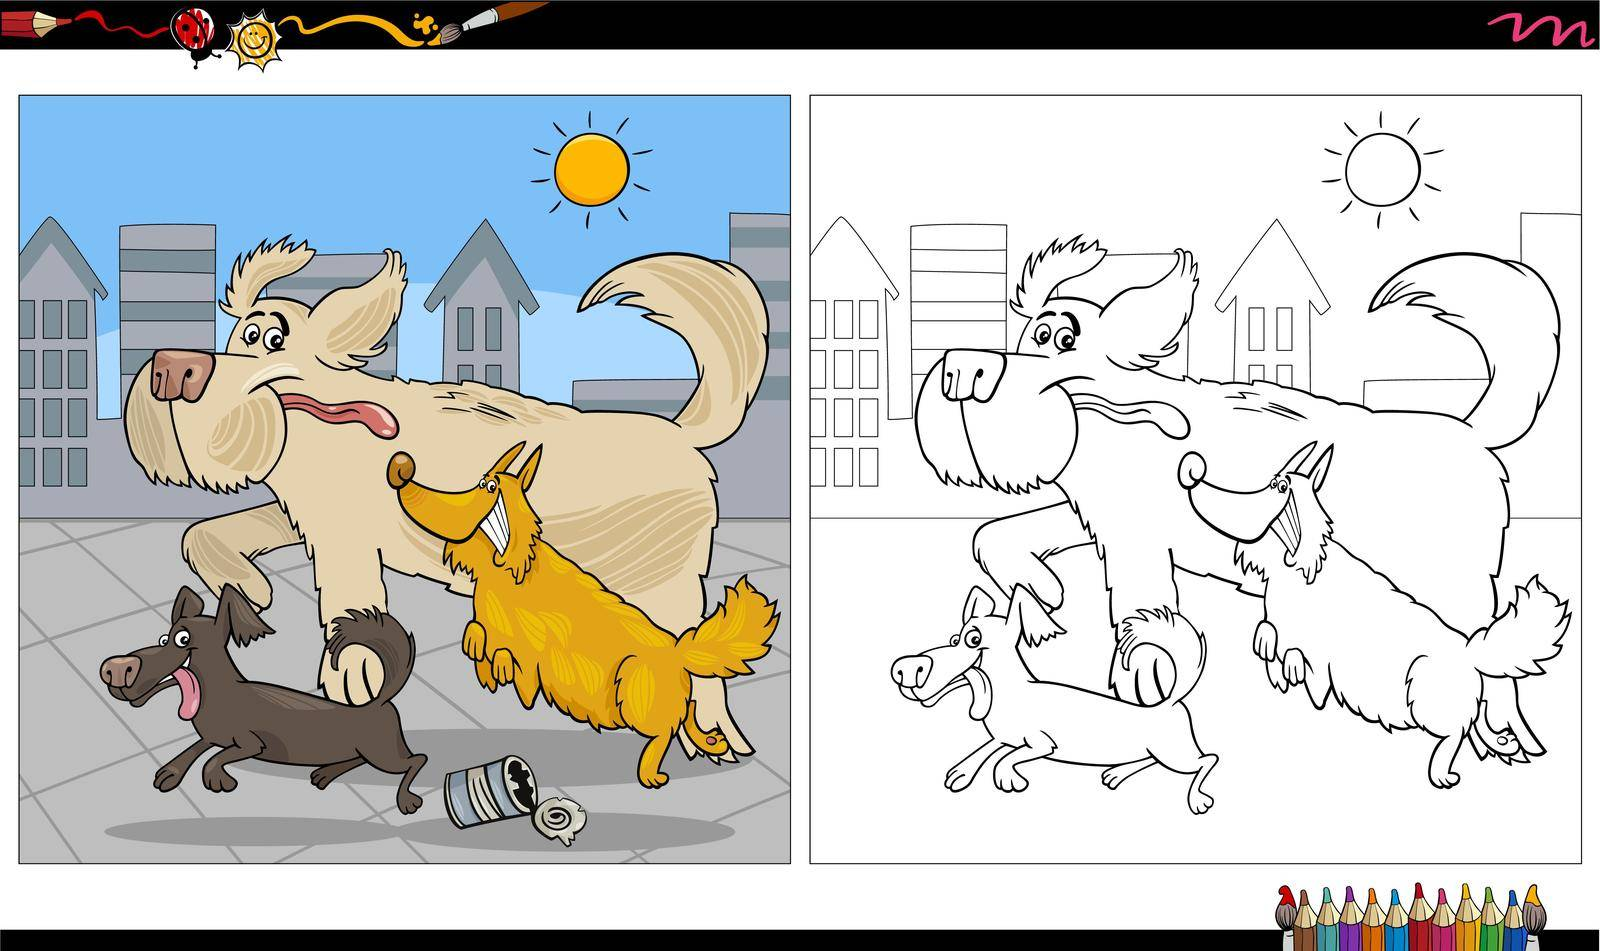 Cartoon illustration of running dogs animal characters group coloring book page